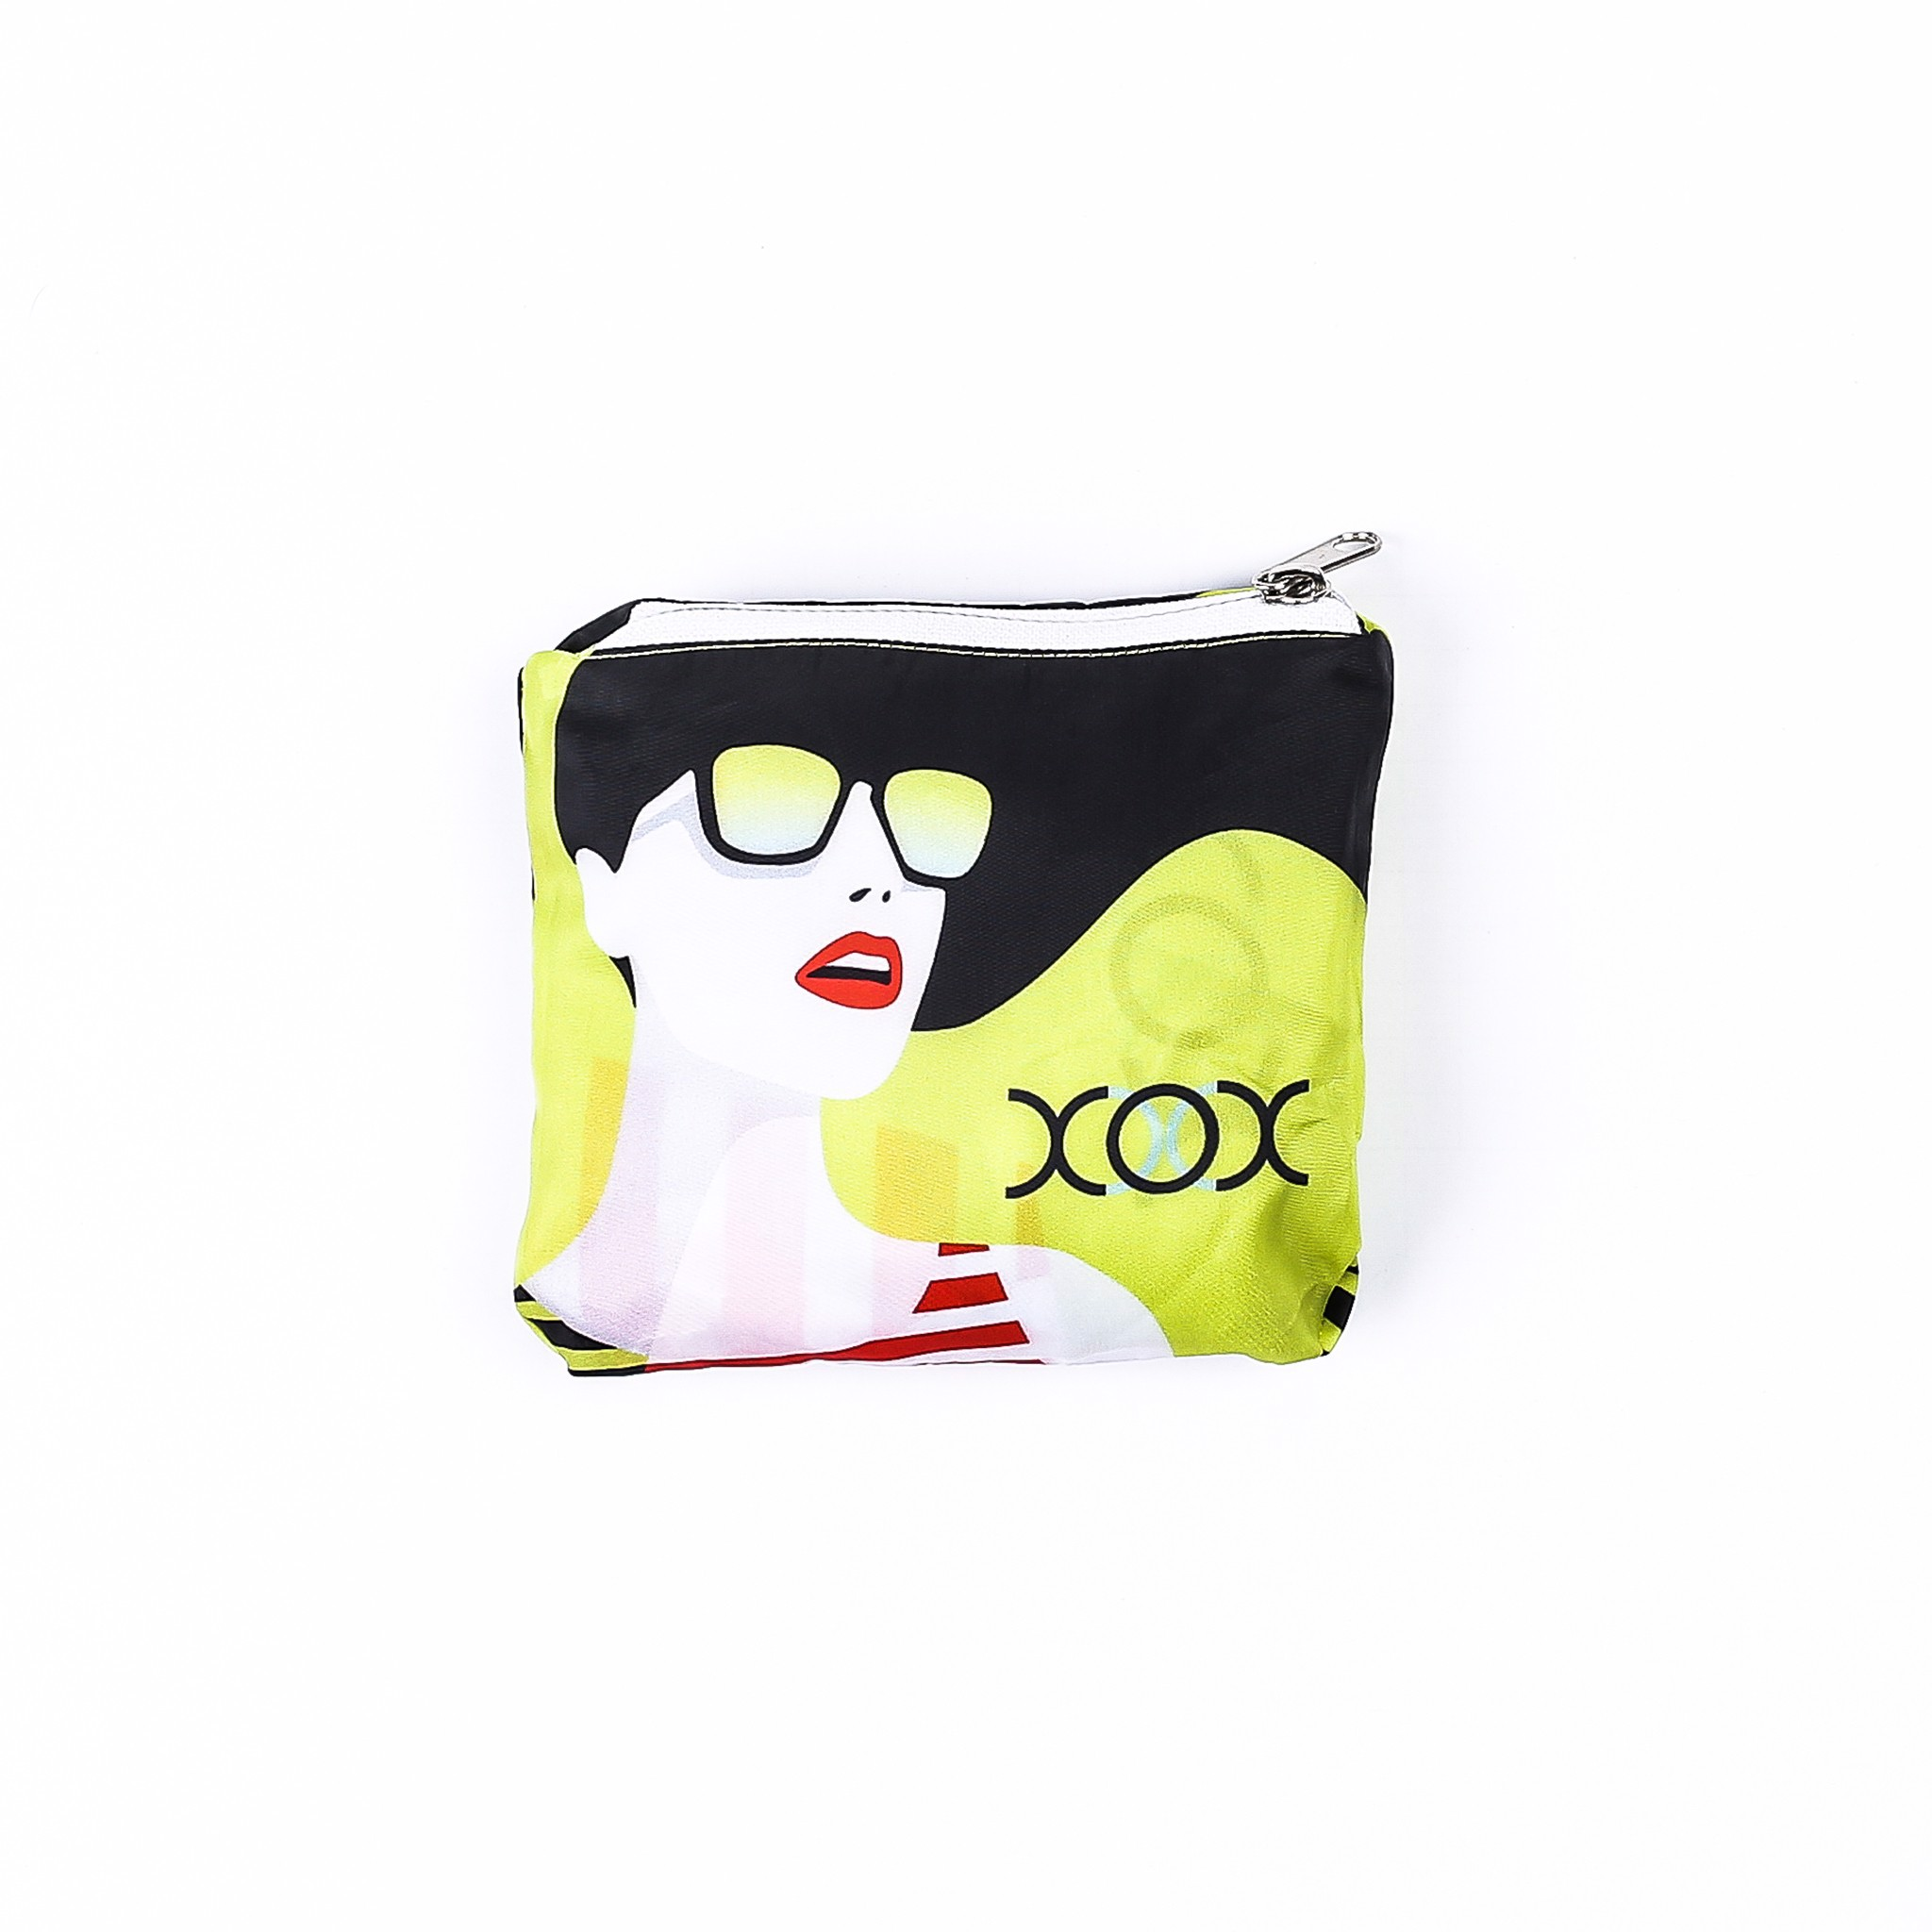 TÚI XOX LARGE BAG YELLOW SUNGLASSES